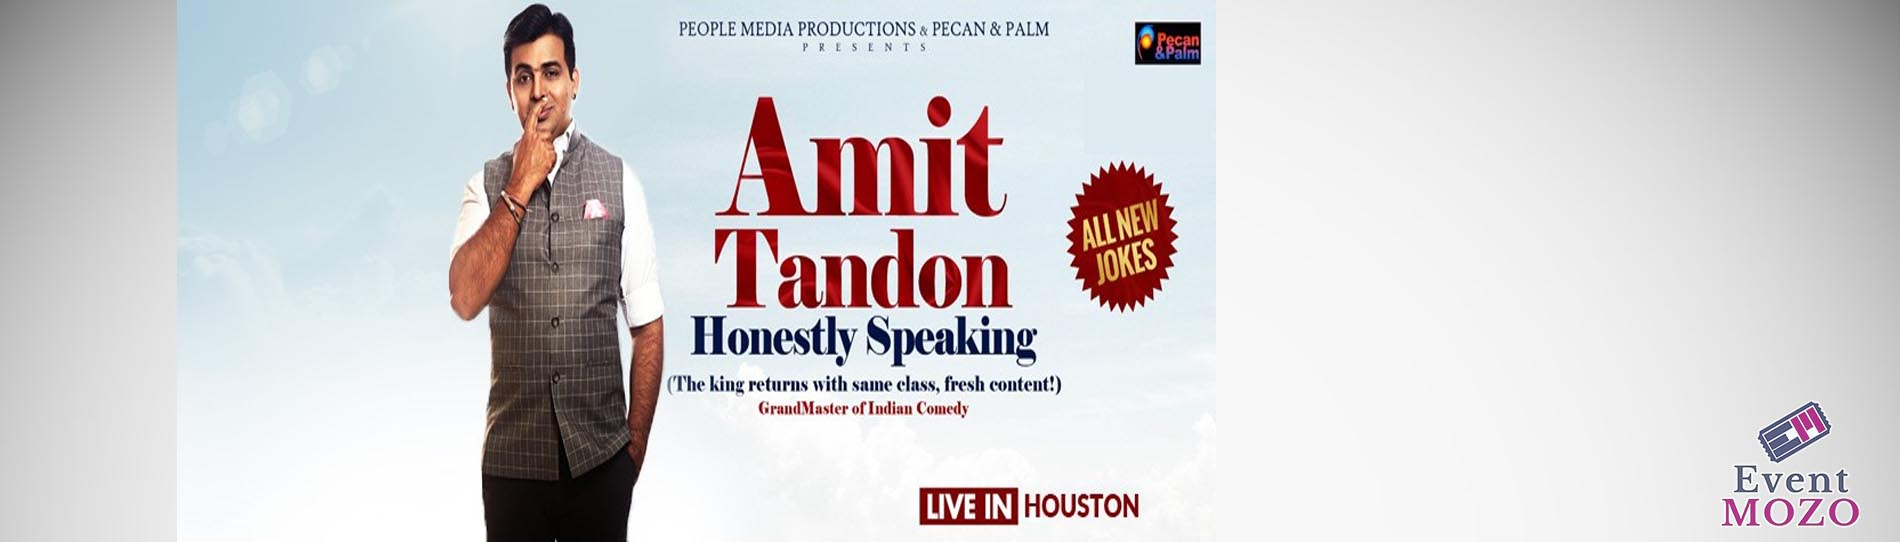 EventMozo Honestly Speaking - Amit Tandon Stand-Up Comedy: Live in Houston